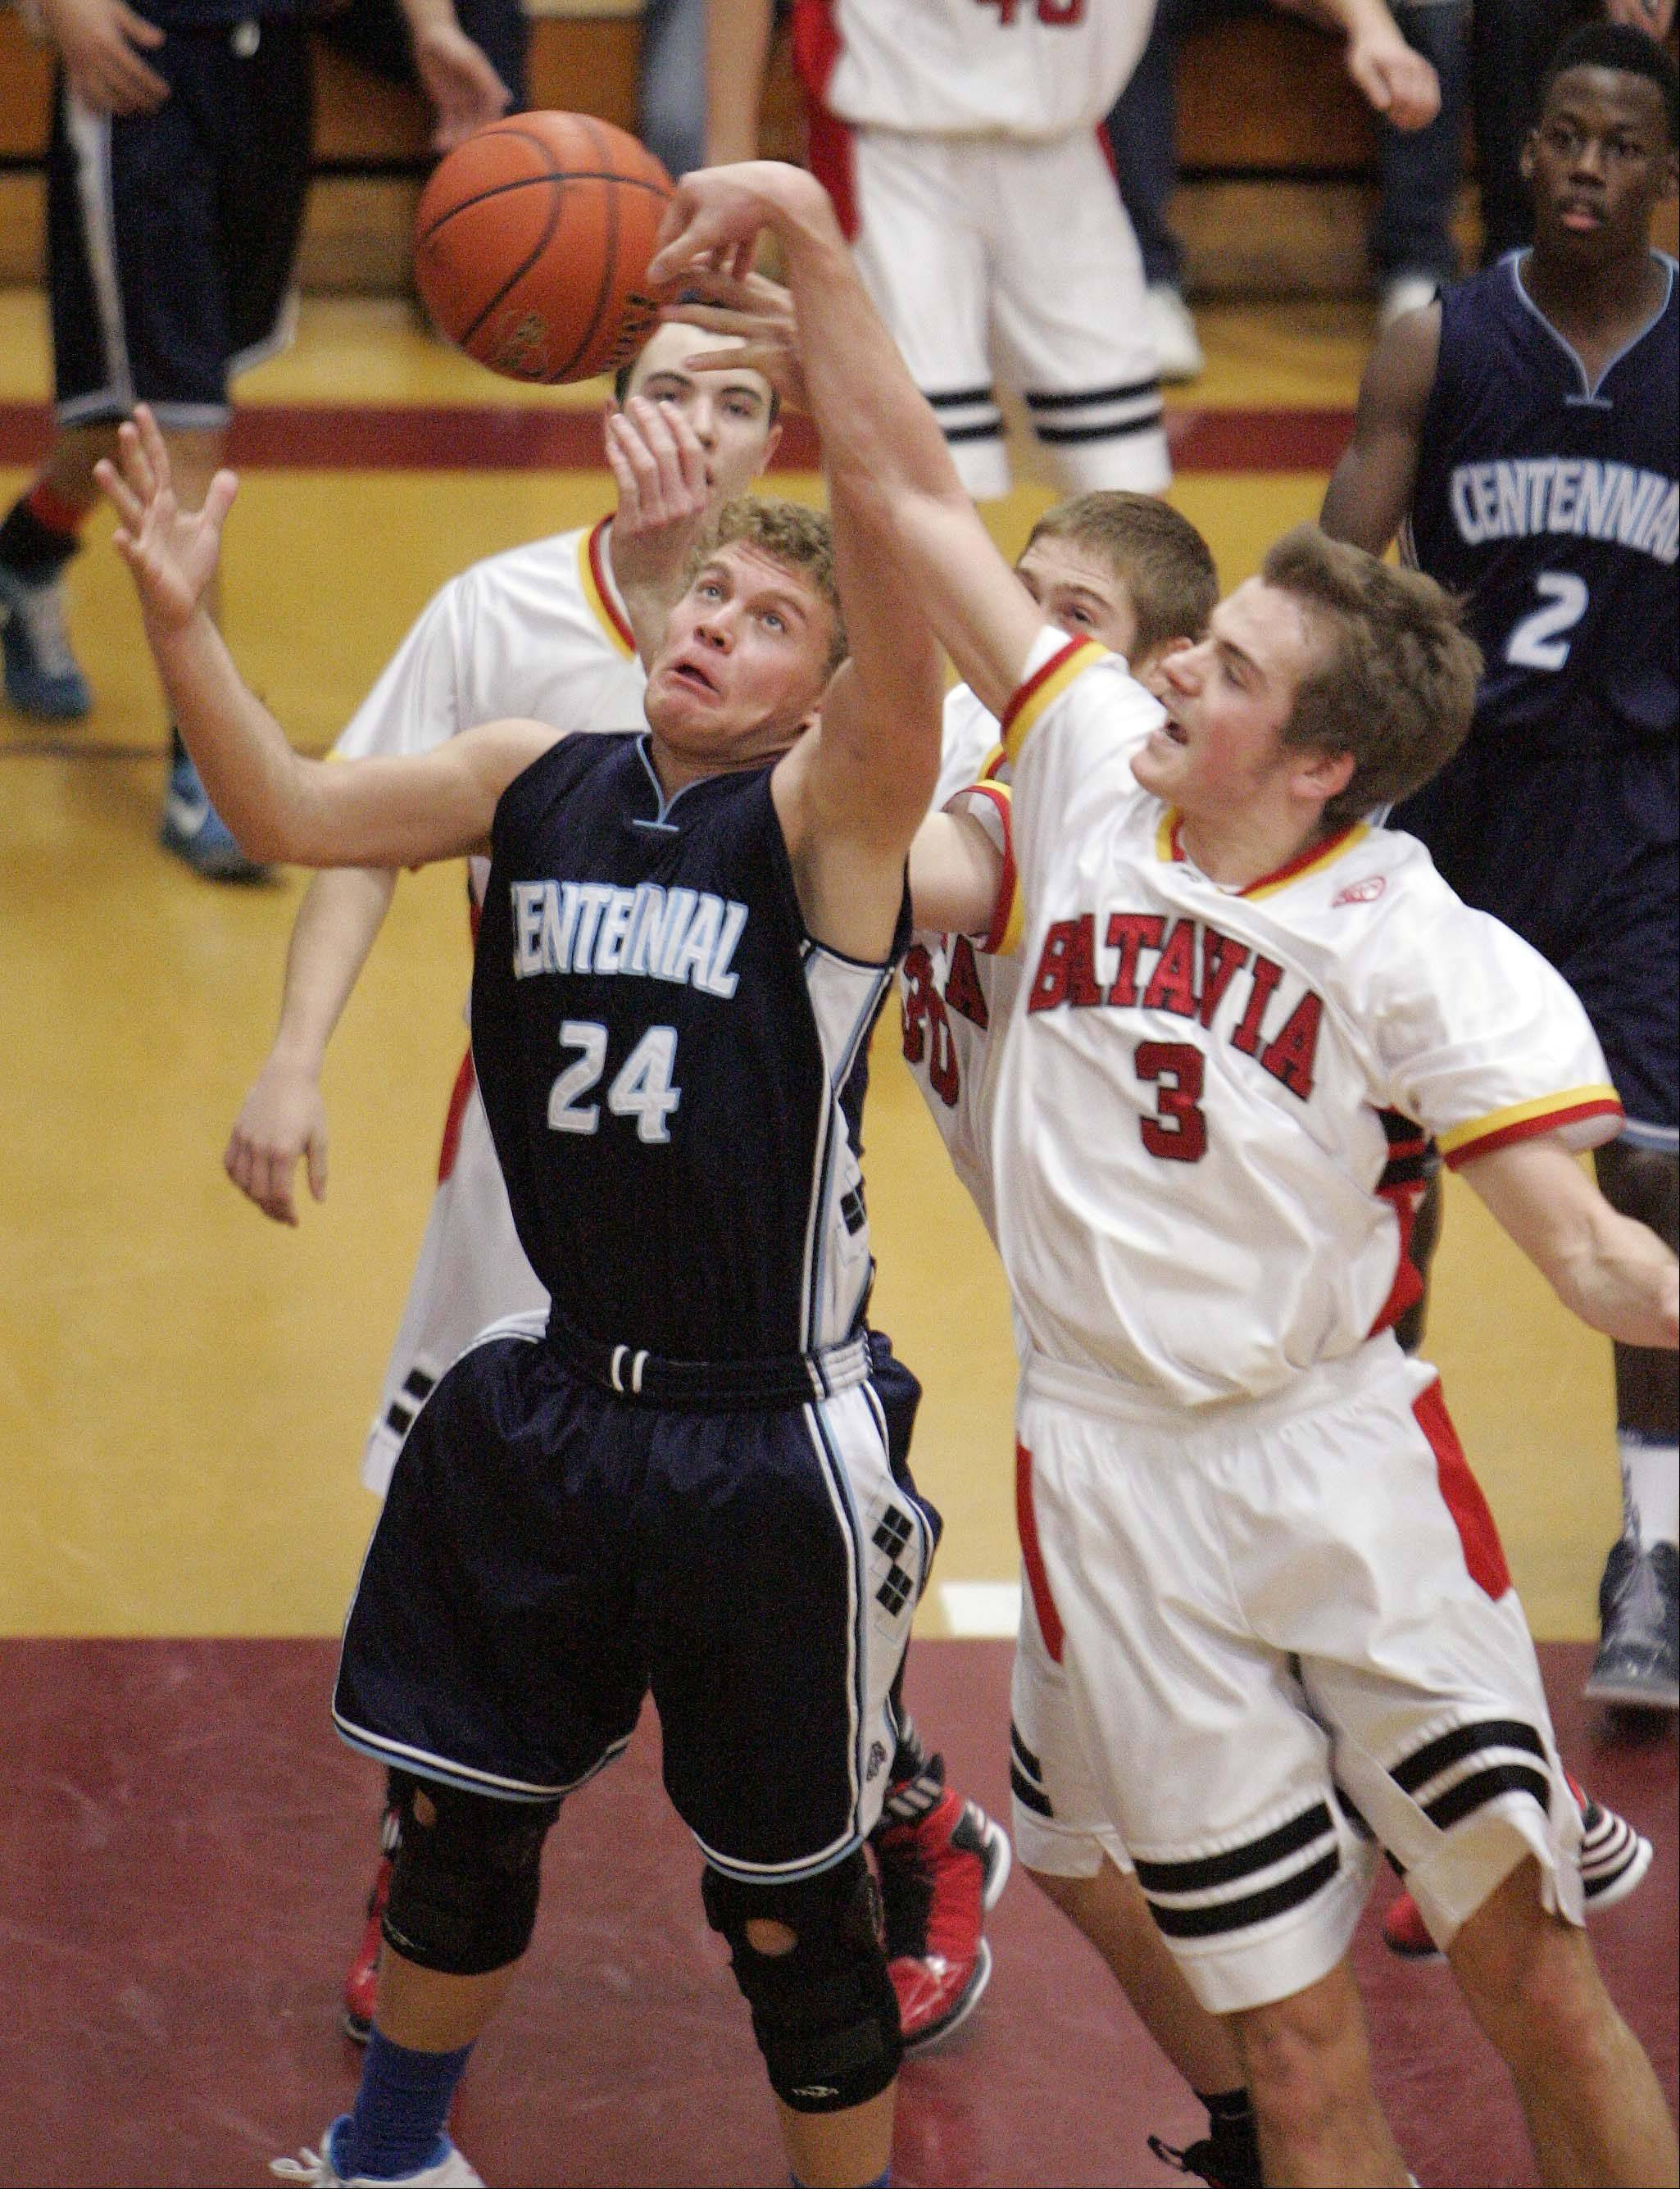 Brian Hill/bhill@dailyherald.com Batavia guard Jake Pollack (3) knocks a rebound from the hands of Las Vegas Centennial's Austin Turley, 24, during the third place basketball game of the 38th Annual Elgin Boys Holiday Basketball Tournament Saturday, December 29, 2012 in Elgin.